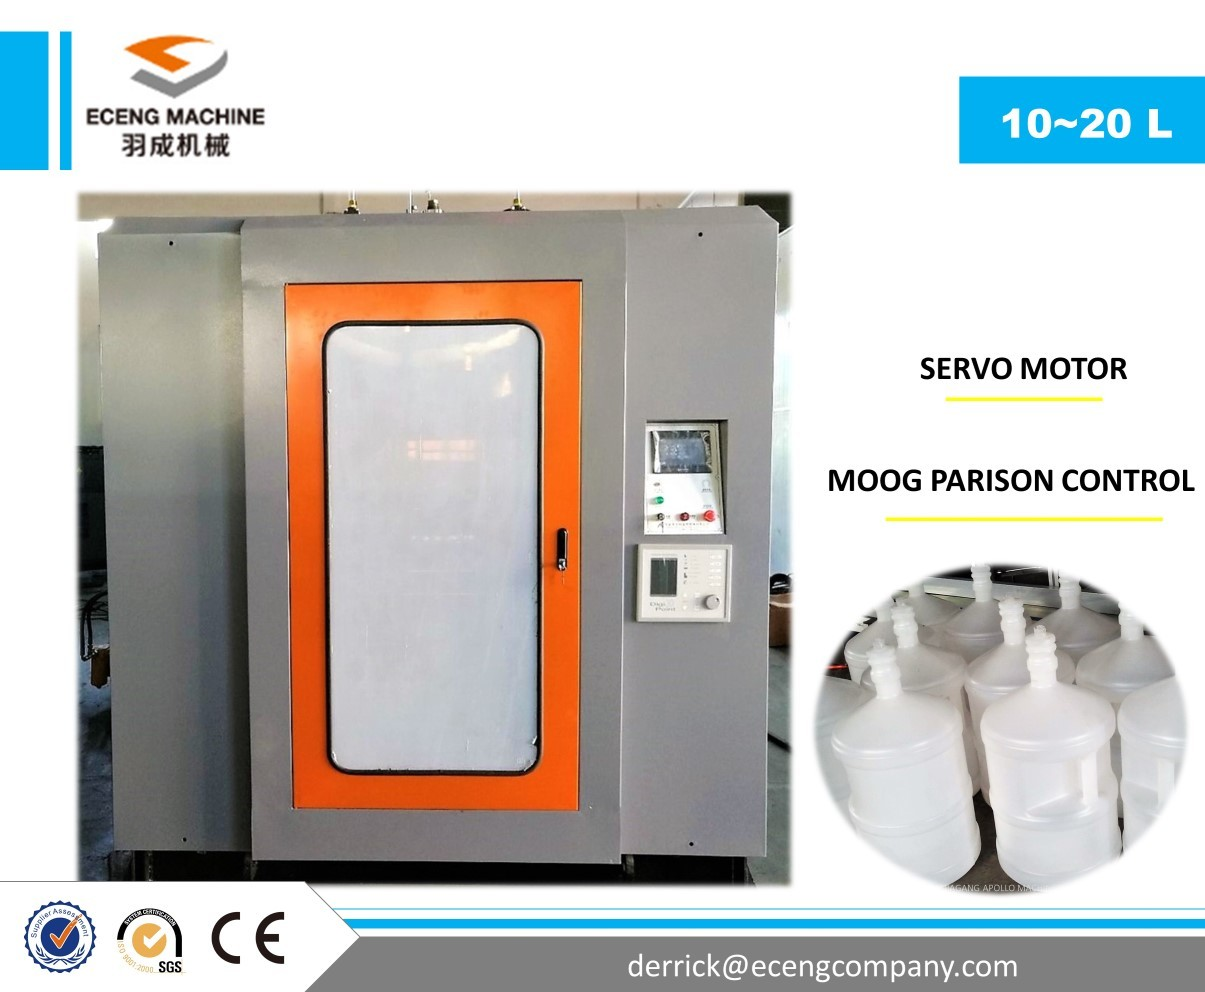 20 Liter Extrusion Molding Machine , 5 Gallon Hdpe Drum Manufacturing Machines